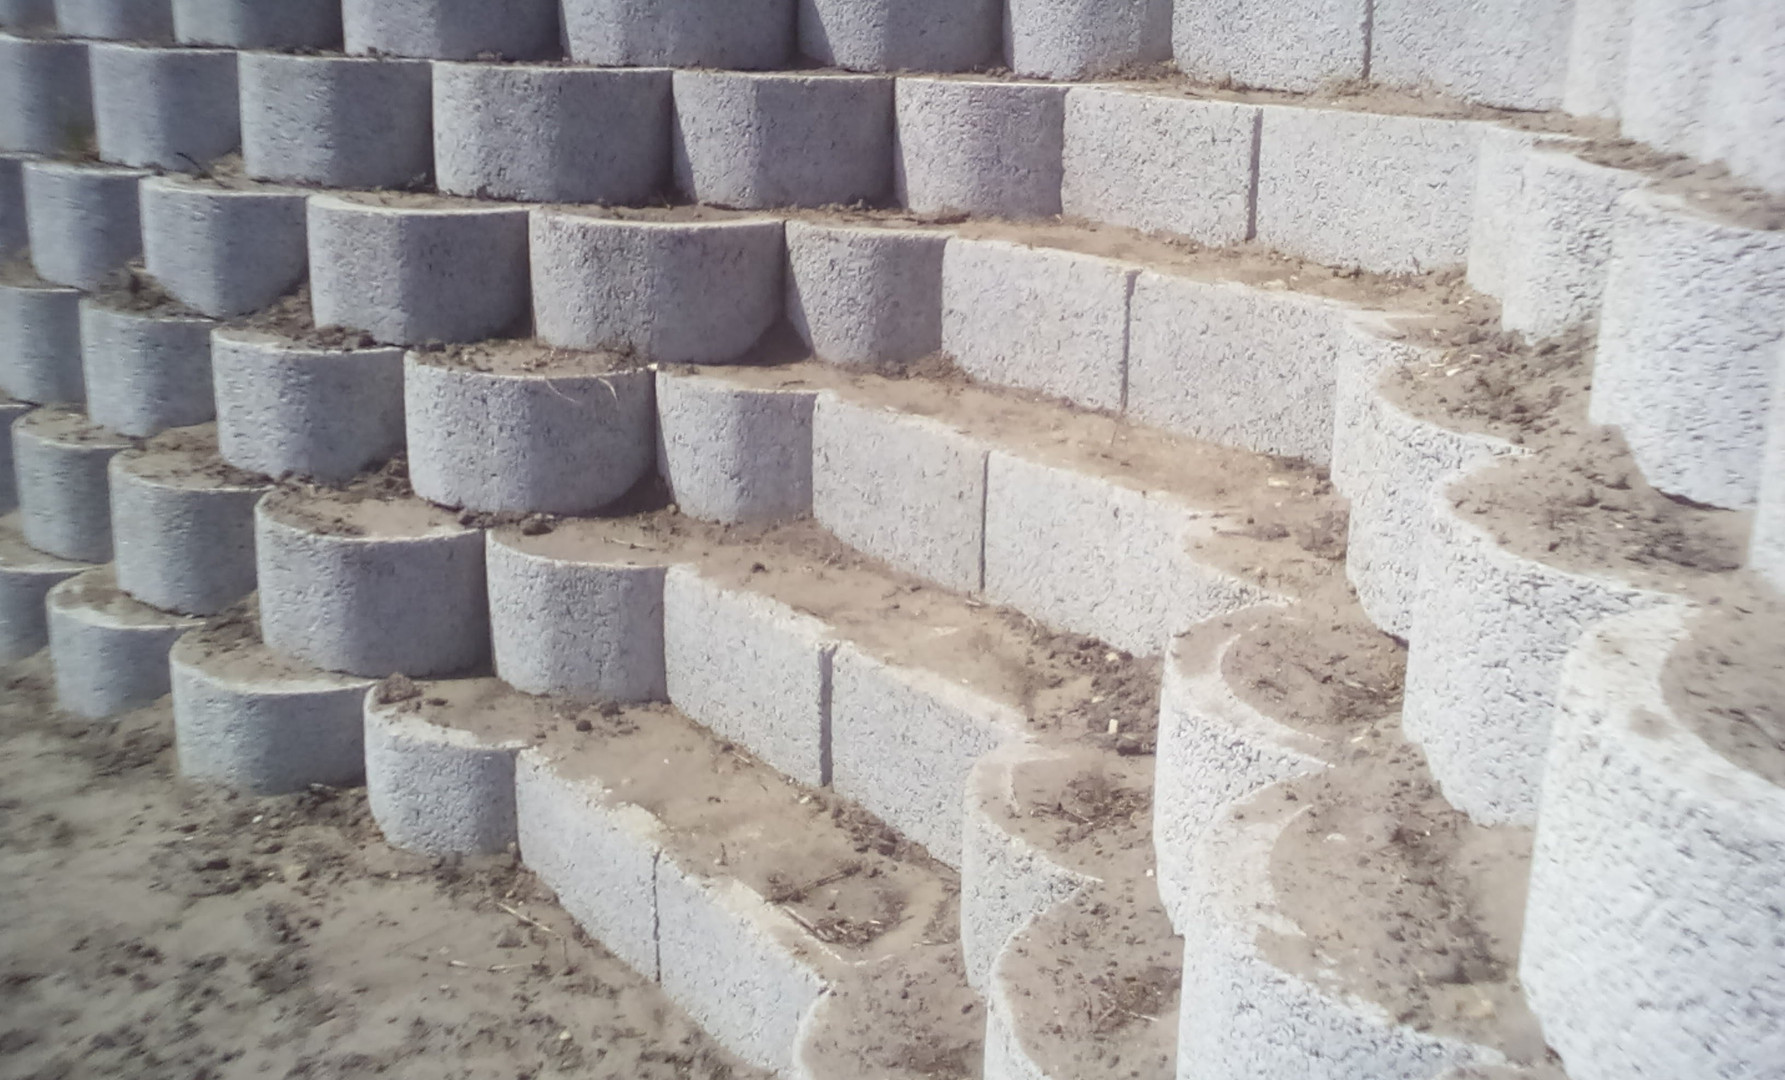 Staircase created with retaining blocks